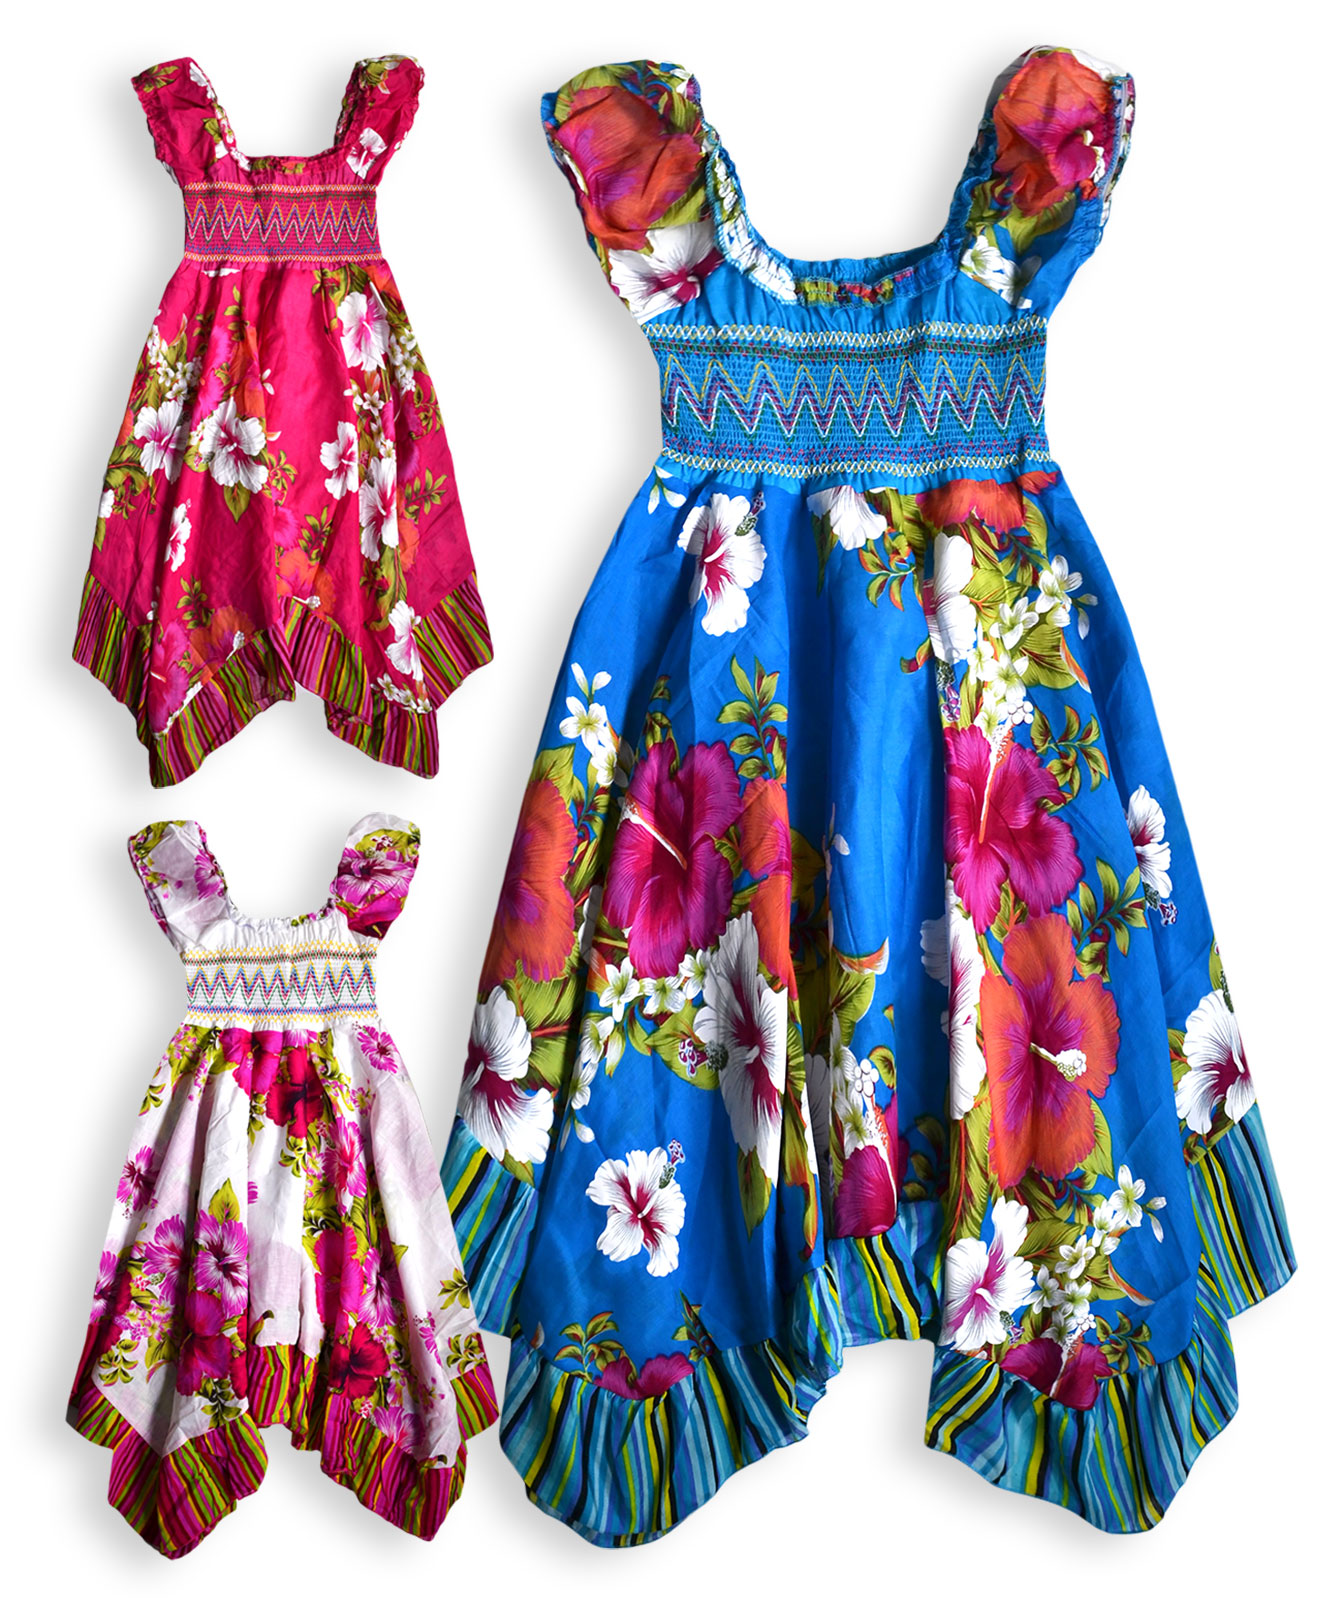 Kids / Girls / Dresses / Gypsy Dresses; Shop by. Filter by Subcategory. Kids; Girls + Dresses; Butterfly Dresses; Gypsy Dresses. Showing 1 to 12 of 14 total Girl Gypsy Uneven Bottom Dress in Lime Green with Red and White Floral Print. $